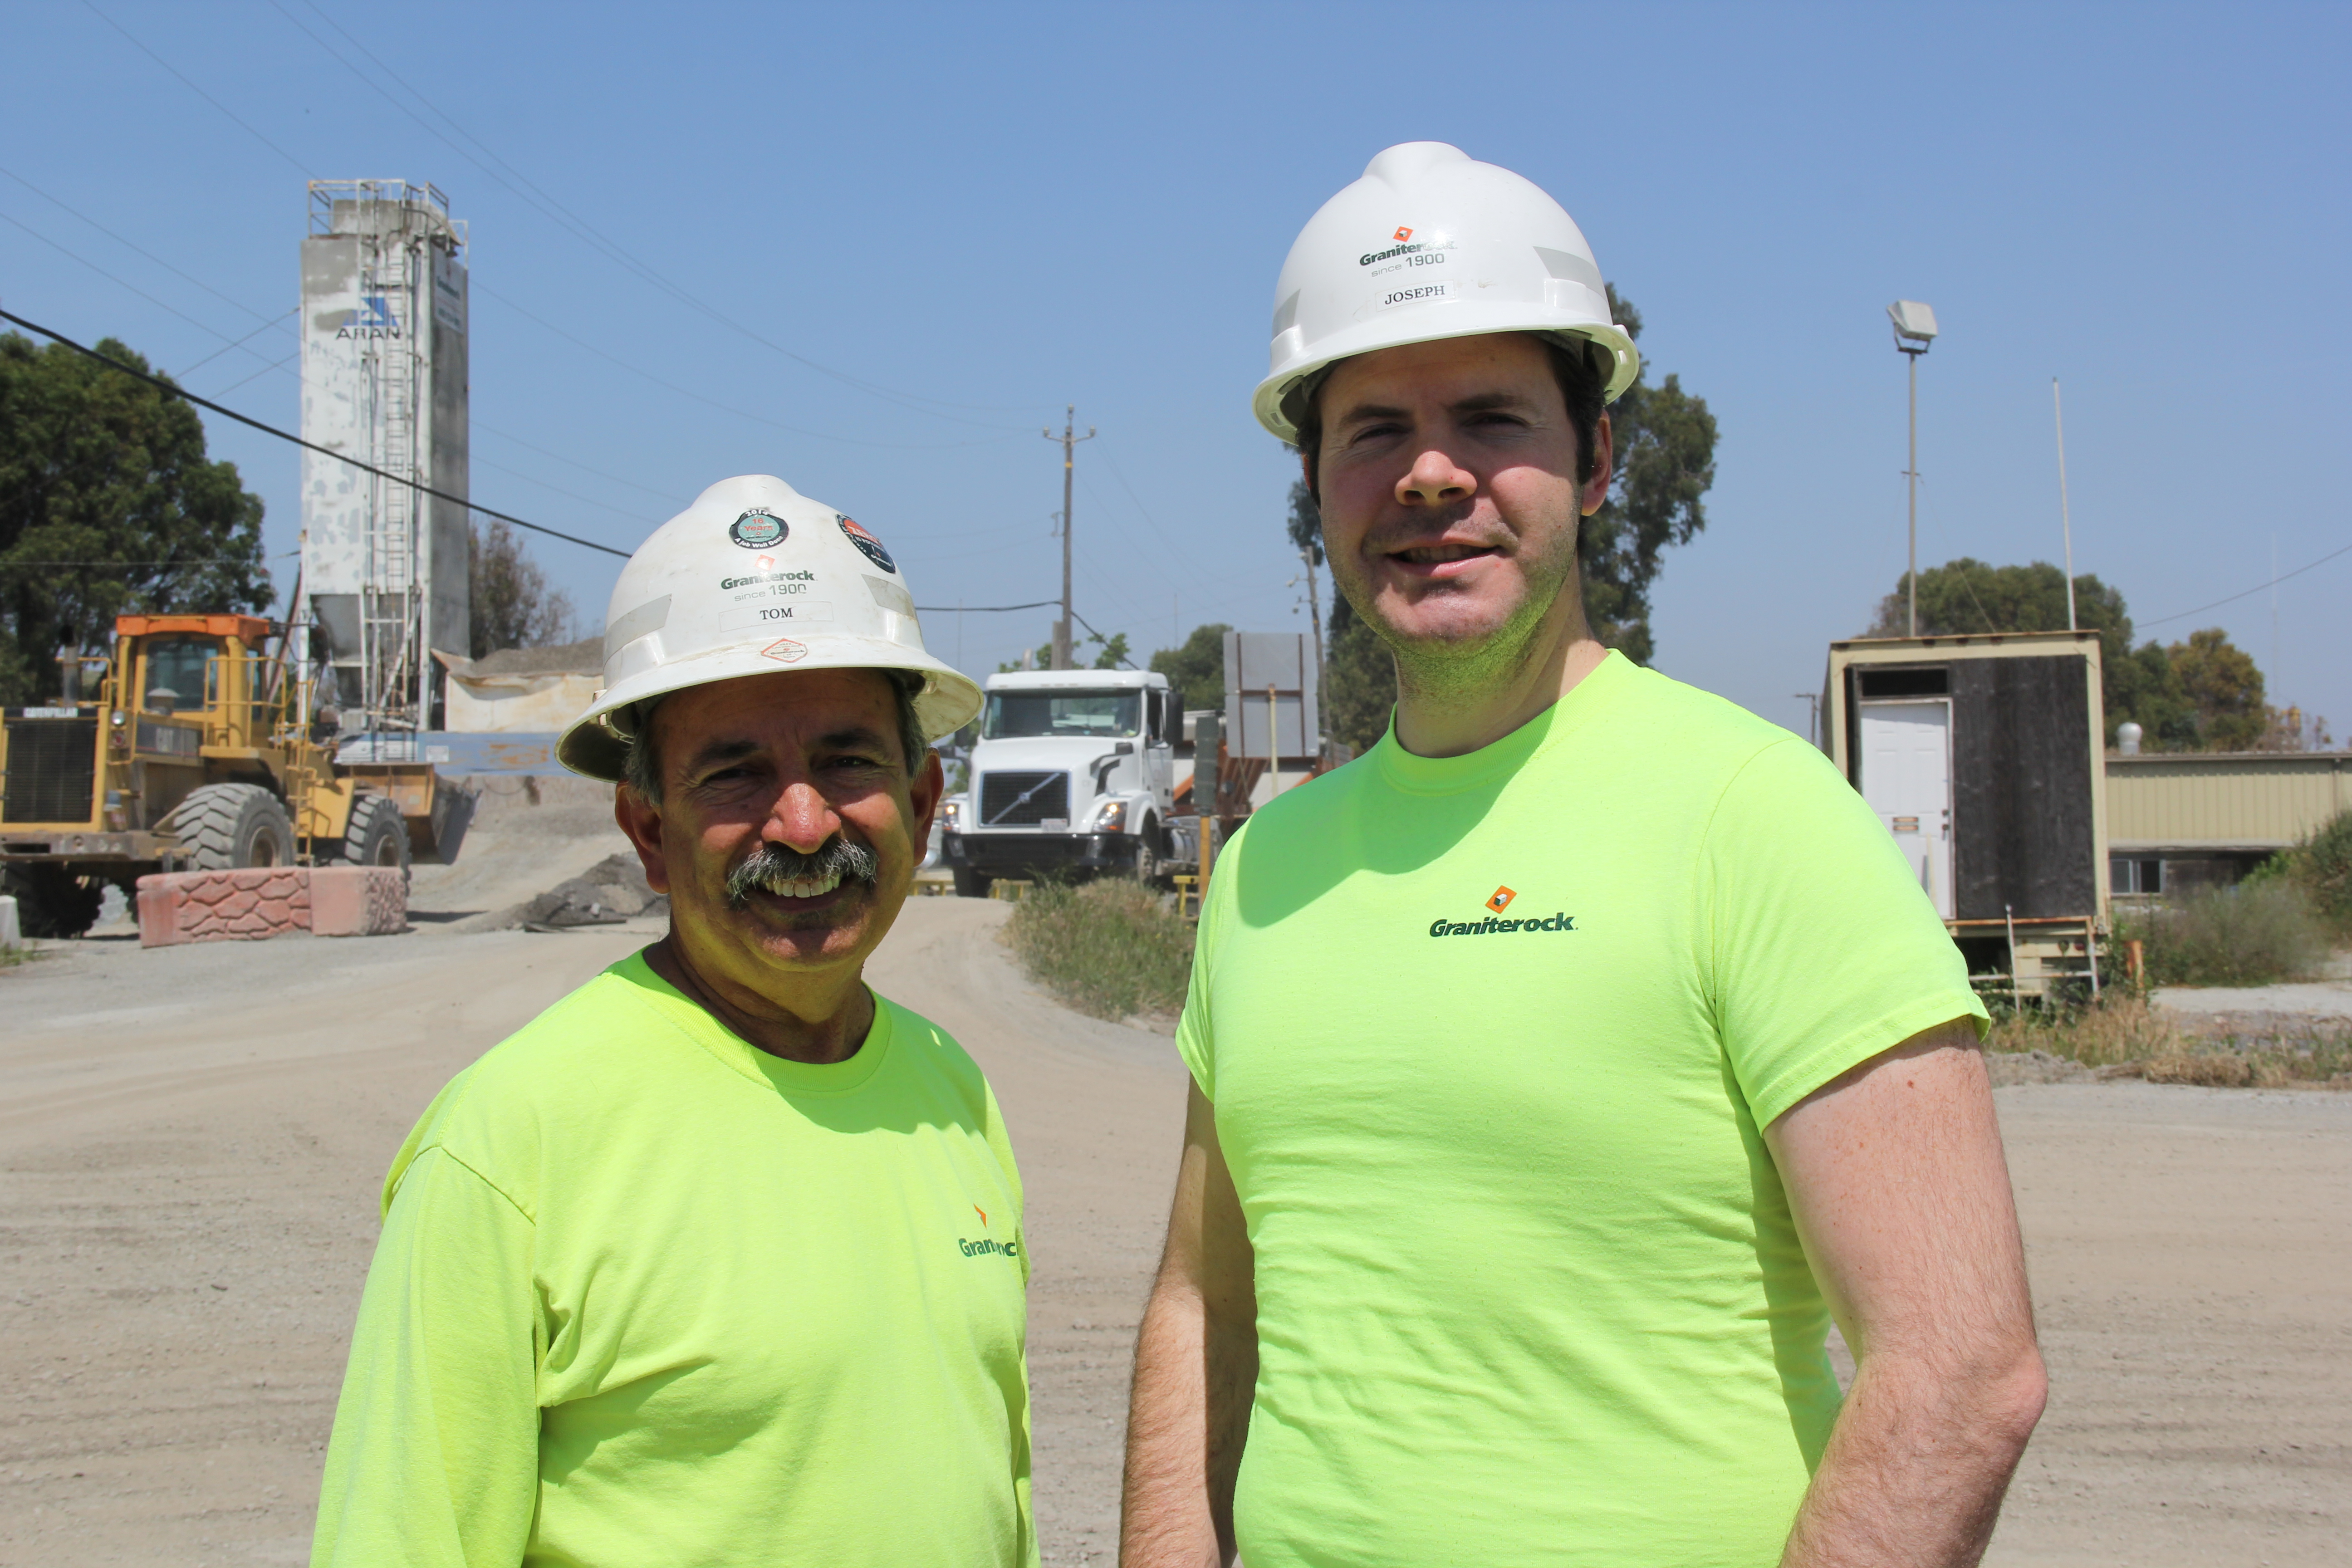 Two-man team crushes recycling business